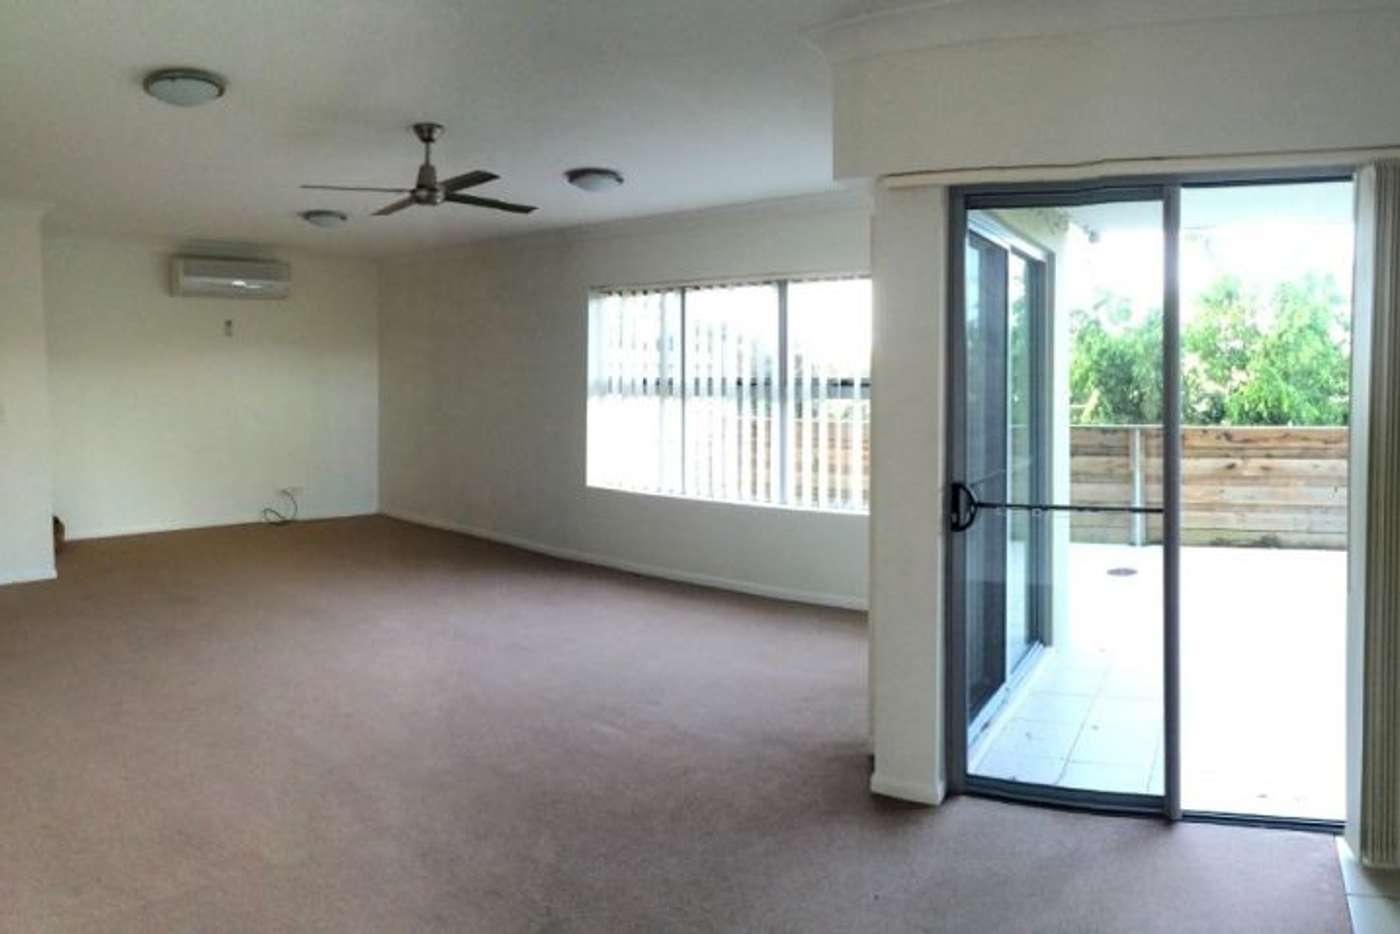 Main view of Homely unit listing, 9/1 Hinterland Drive, Mudgeeraba QLD 4213